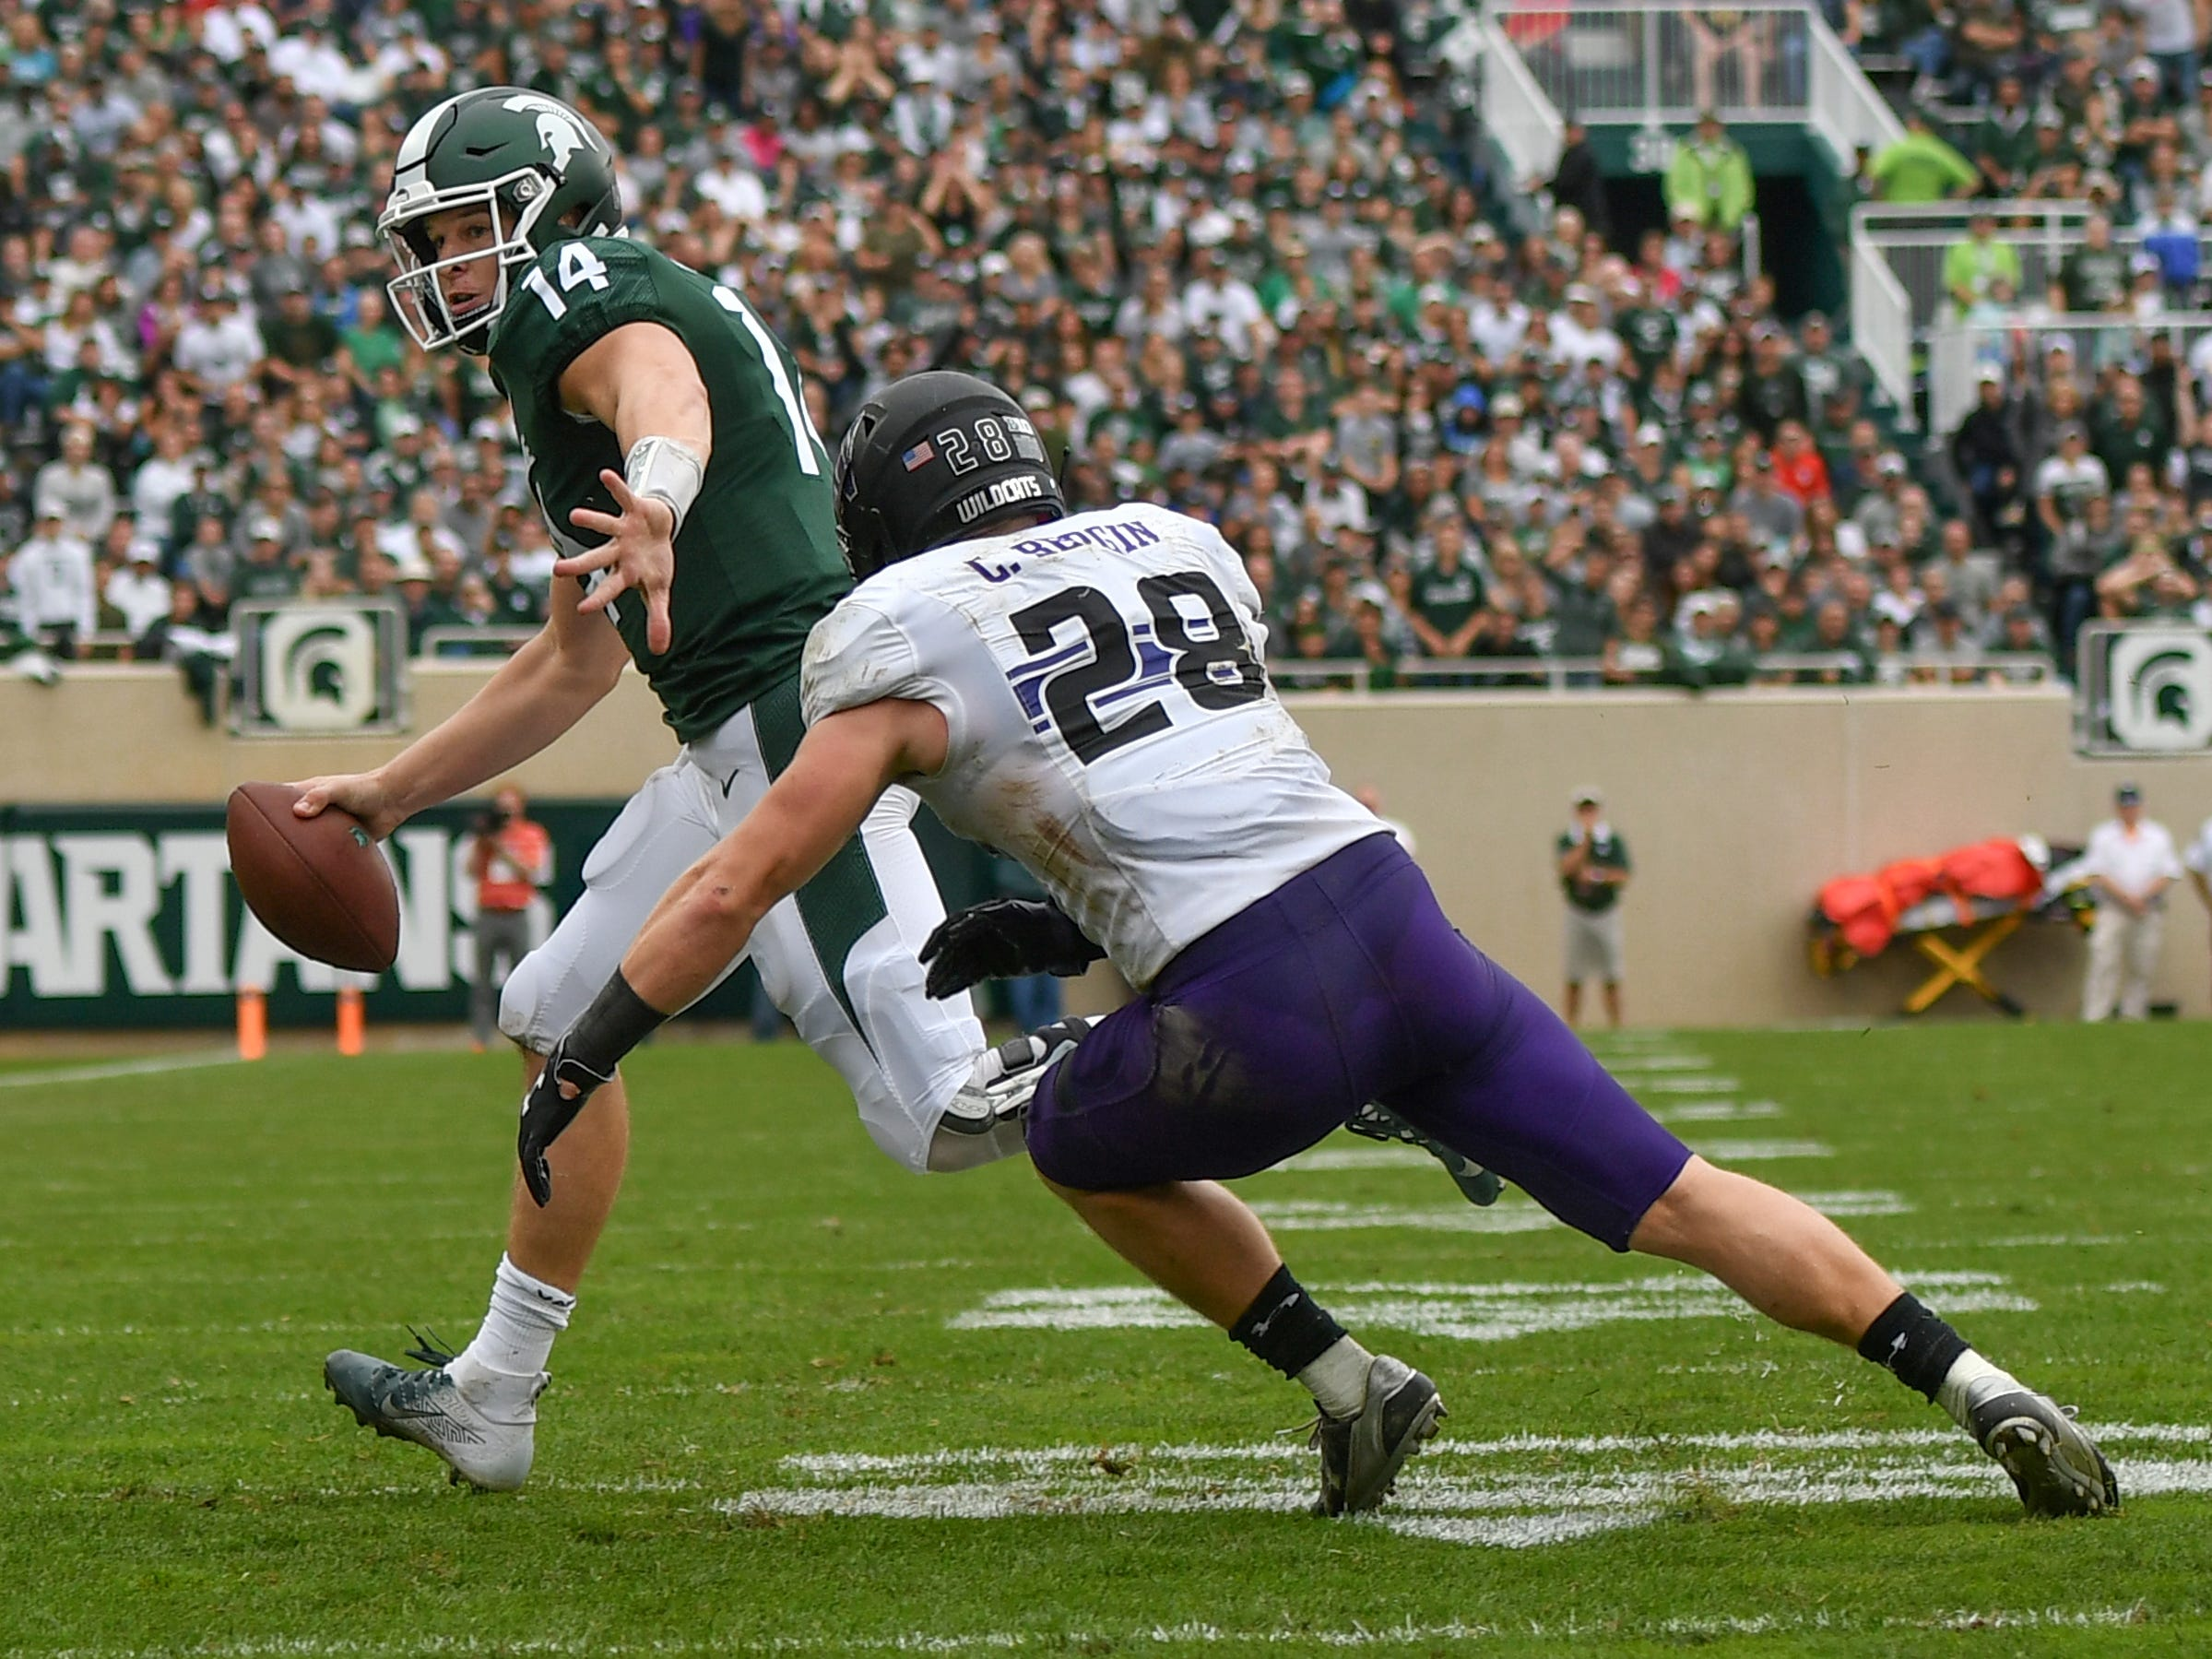 MSU QB Brian Lewerke tries to get past Chris Bergin on a keeper, Sat., Oct. 6, 2018.  MSU lost 29-19.